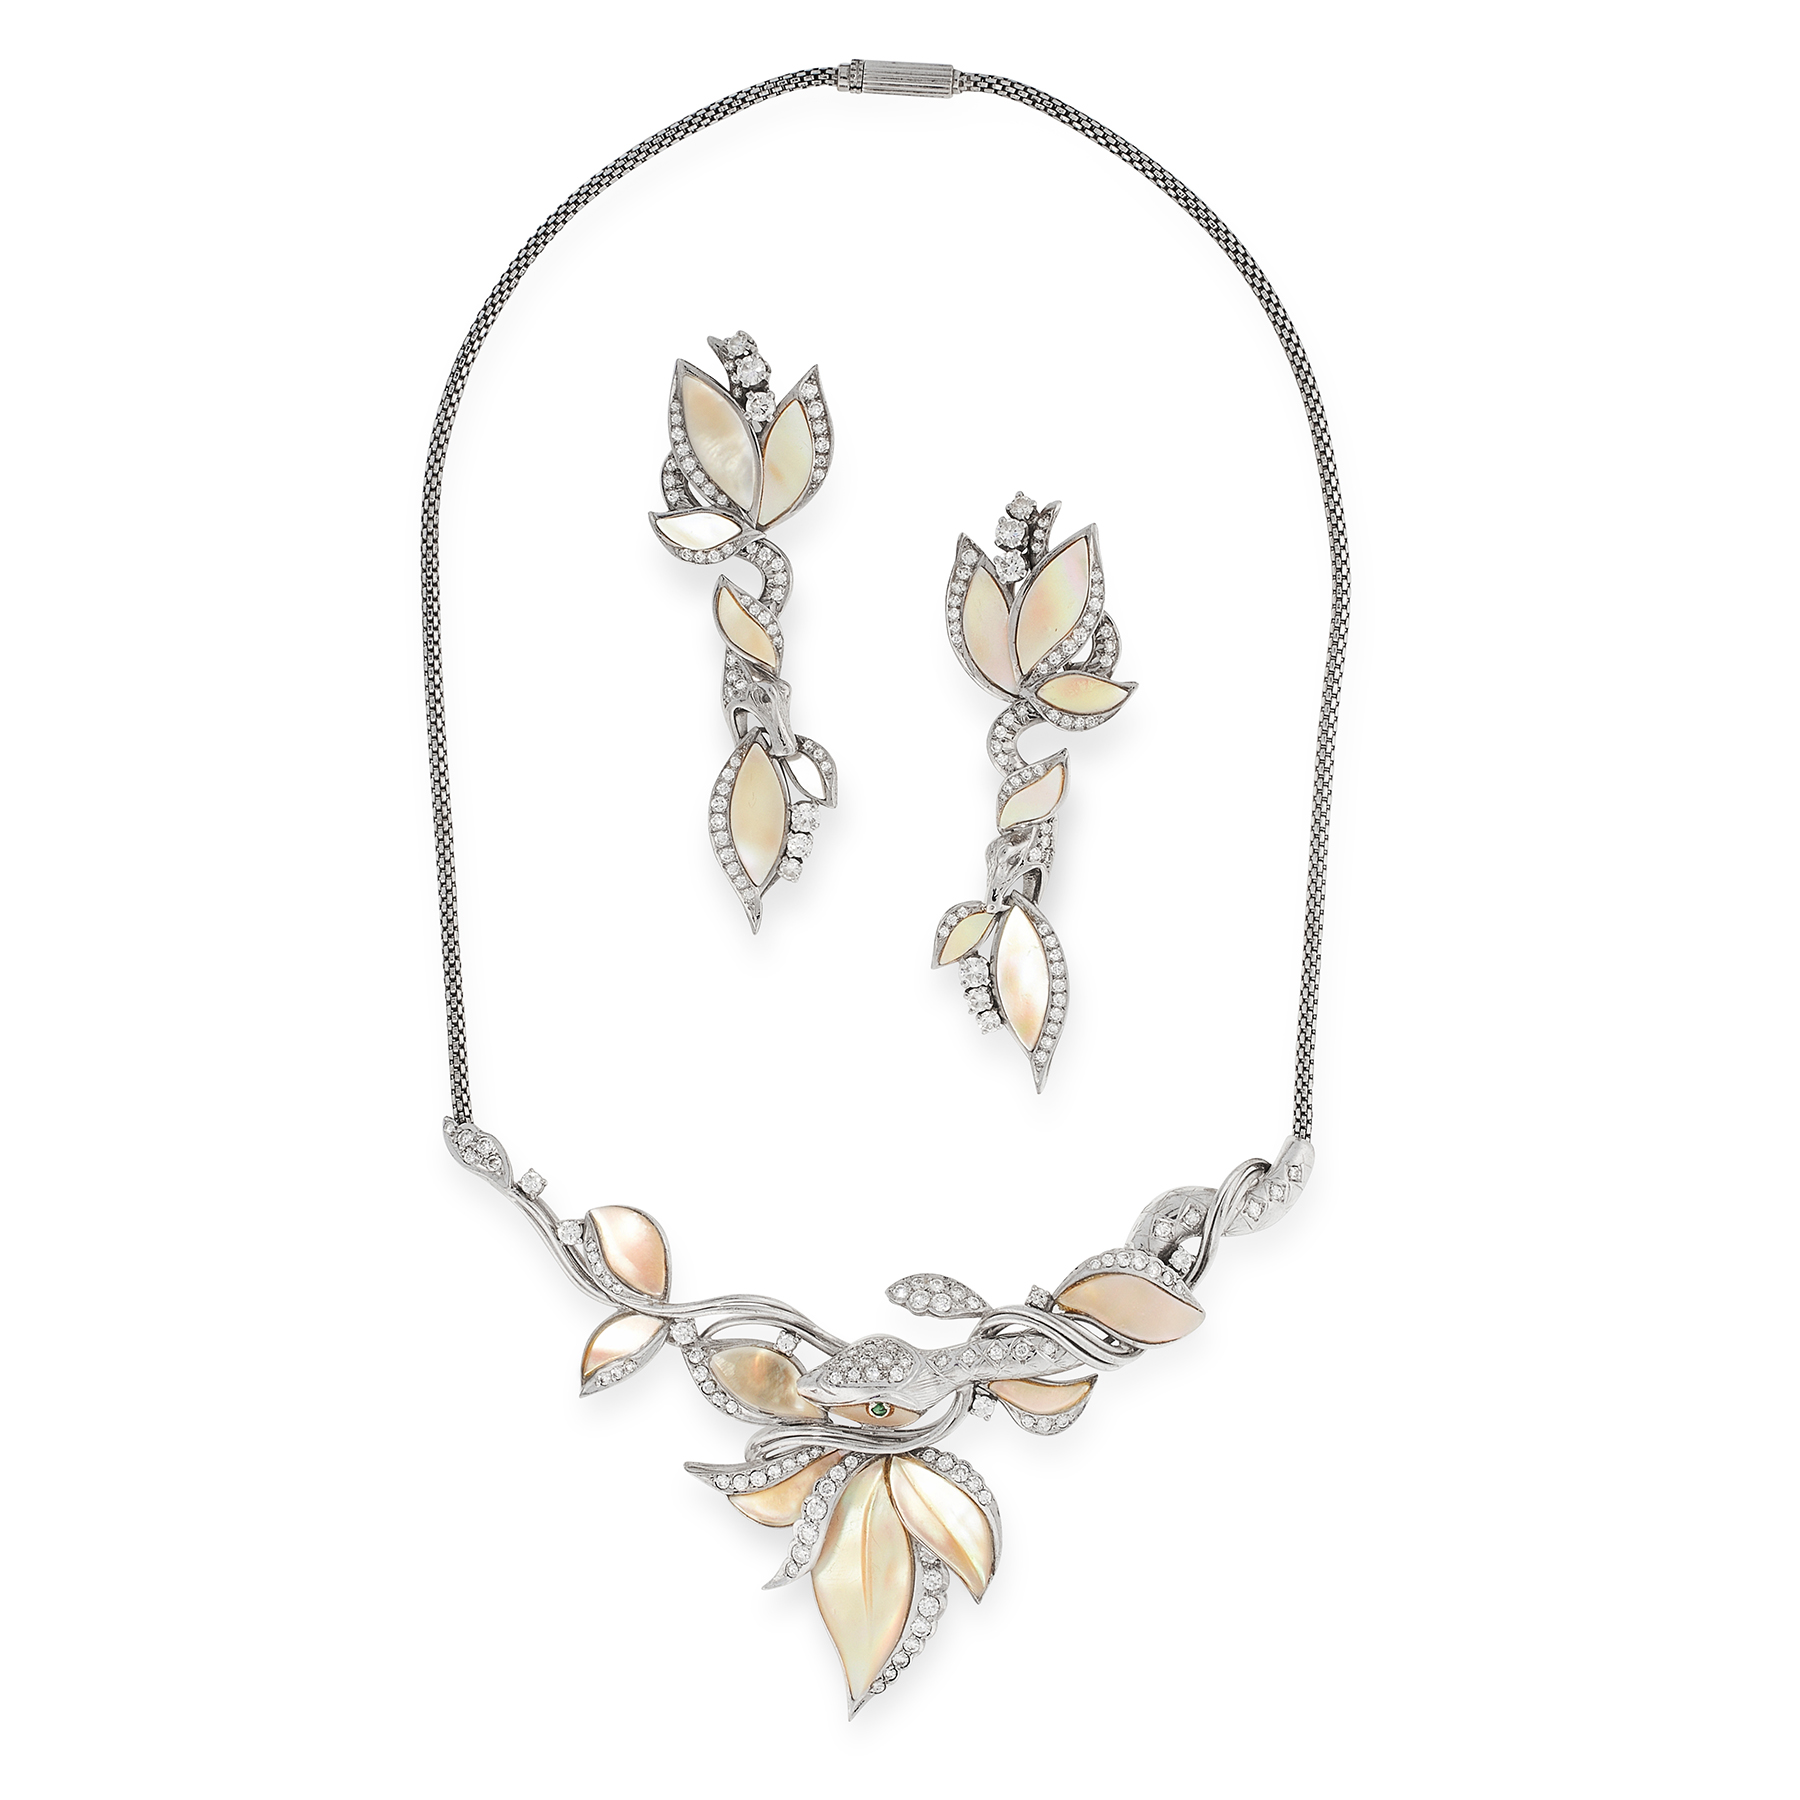 A MOTHER OF PEARL AND DIAMOND SNAKE NECKLACE AND EARRINGS SUITE in 18ct white gold, each designed to